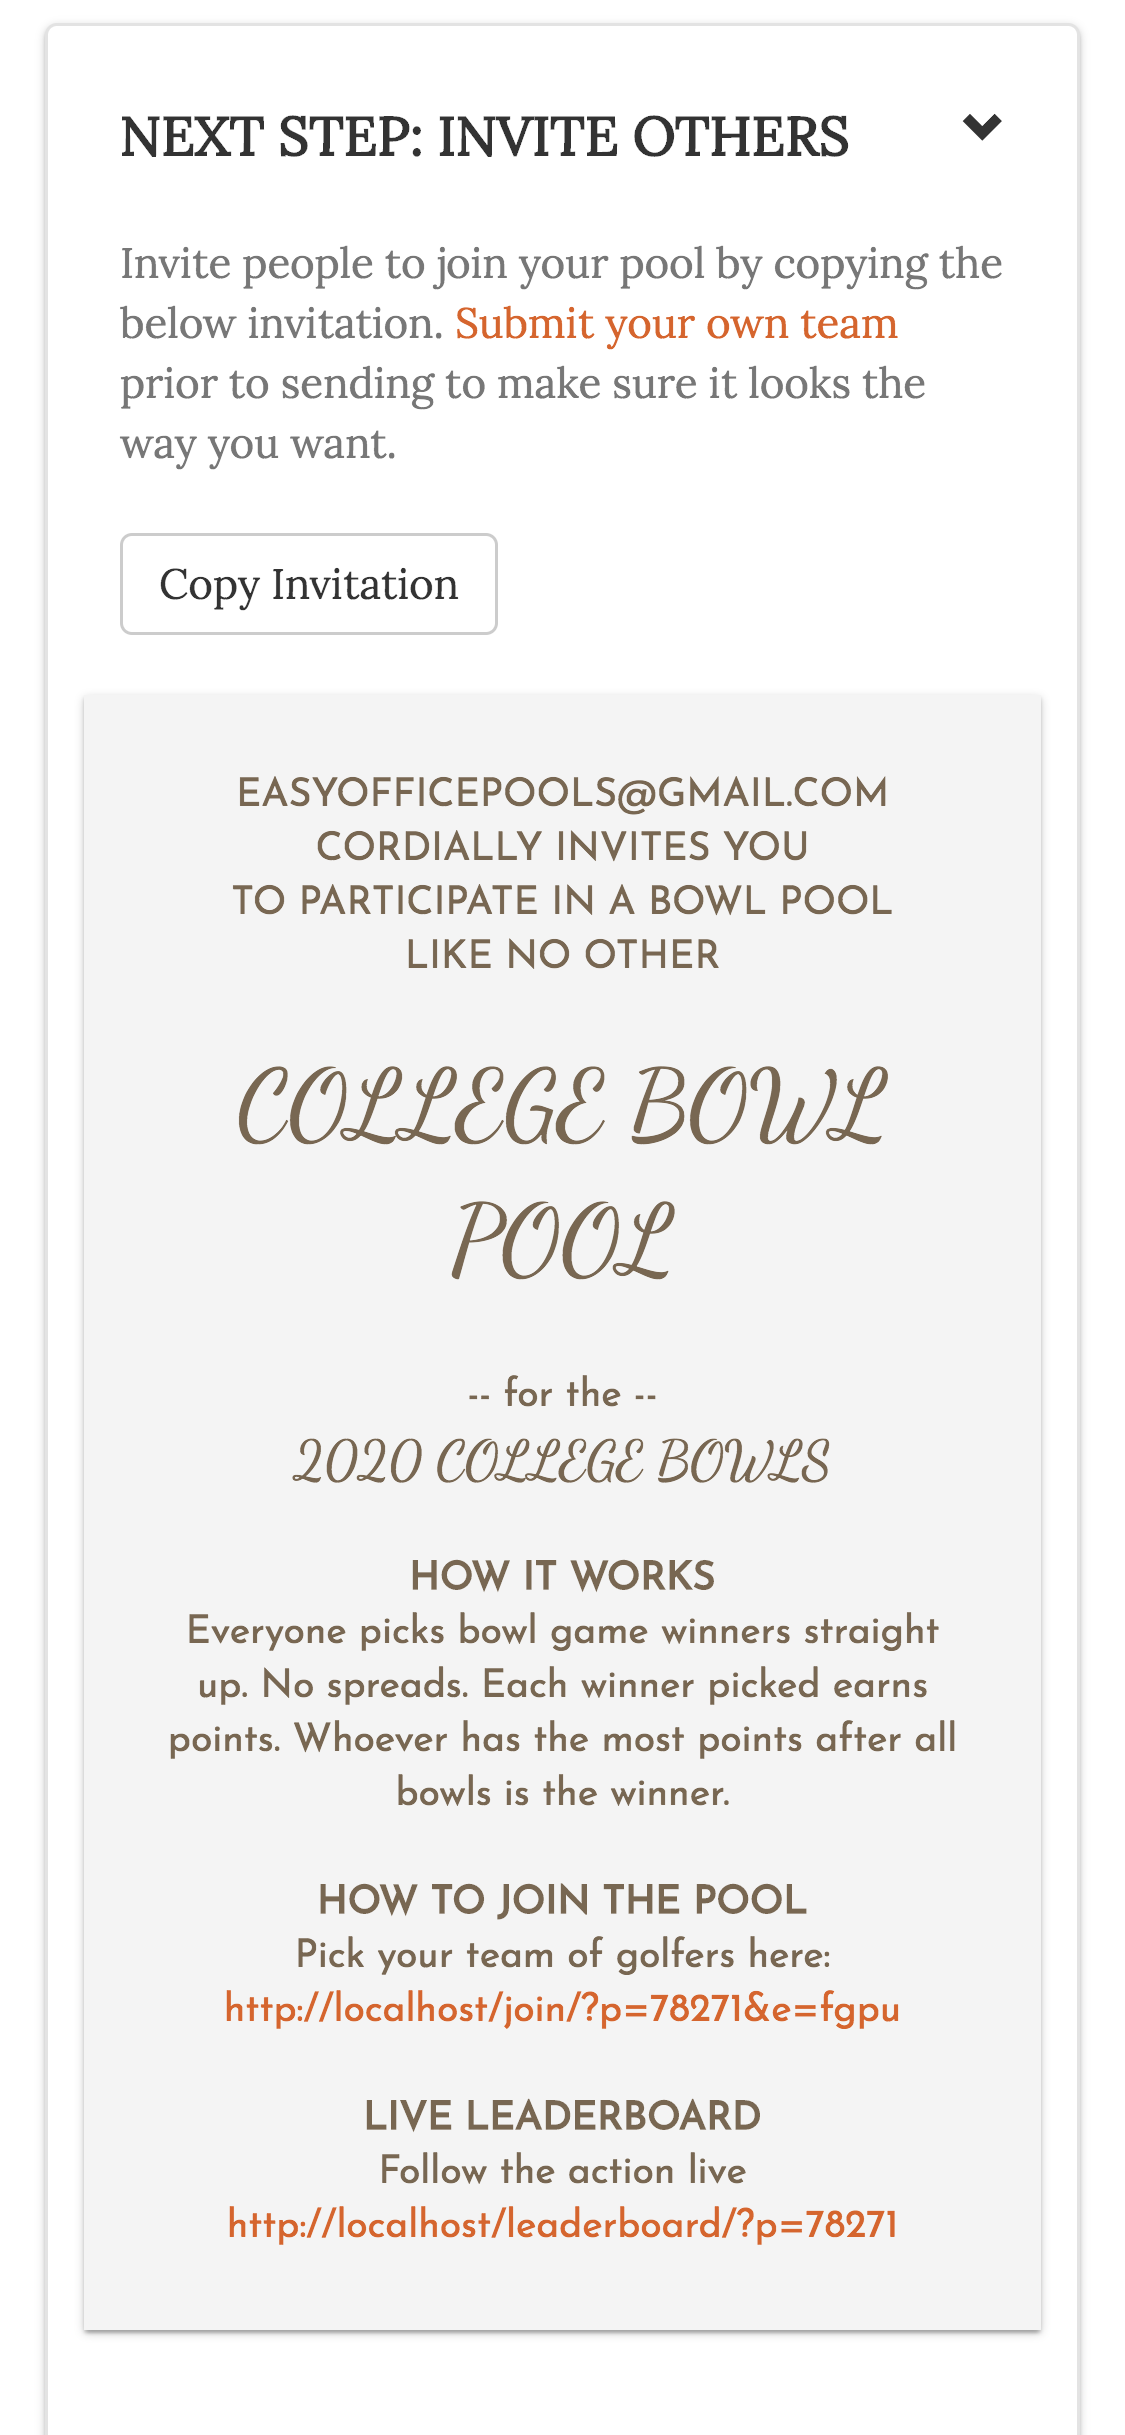 (4) Invitation for College Bowl Pool